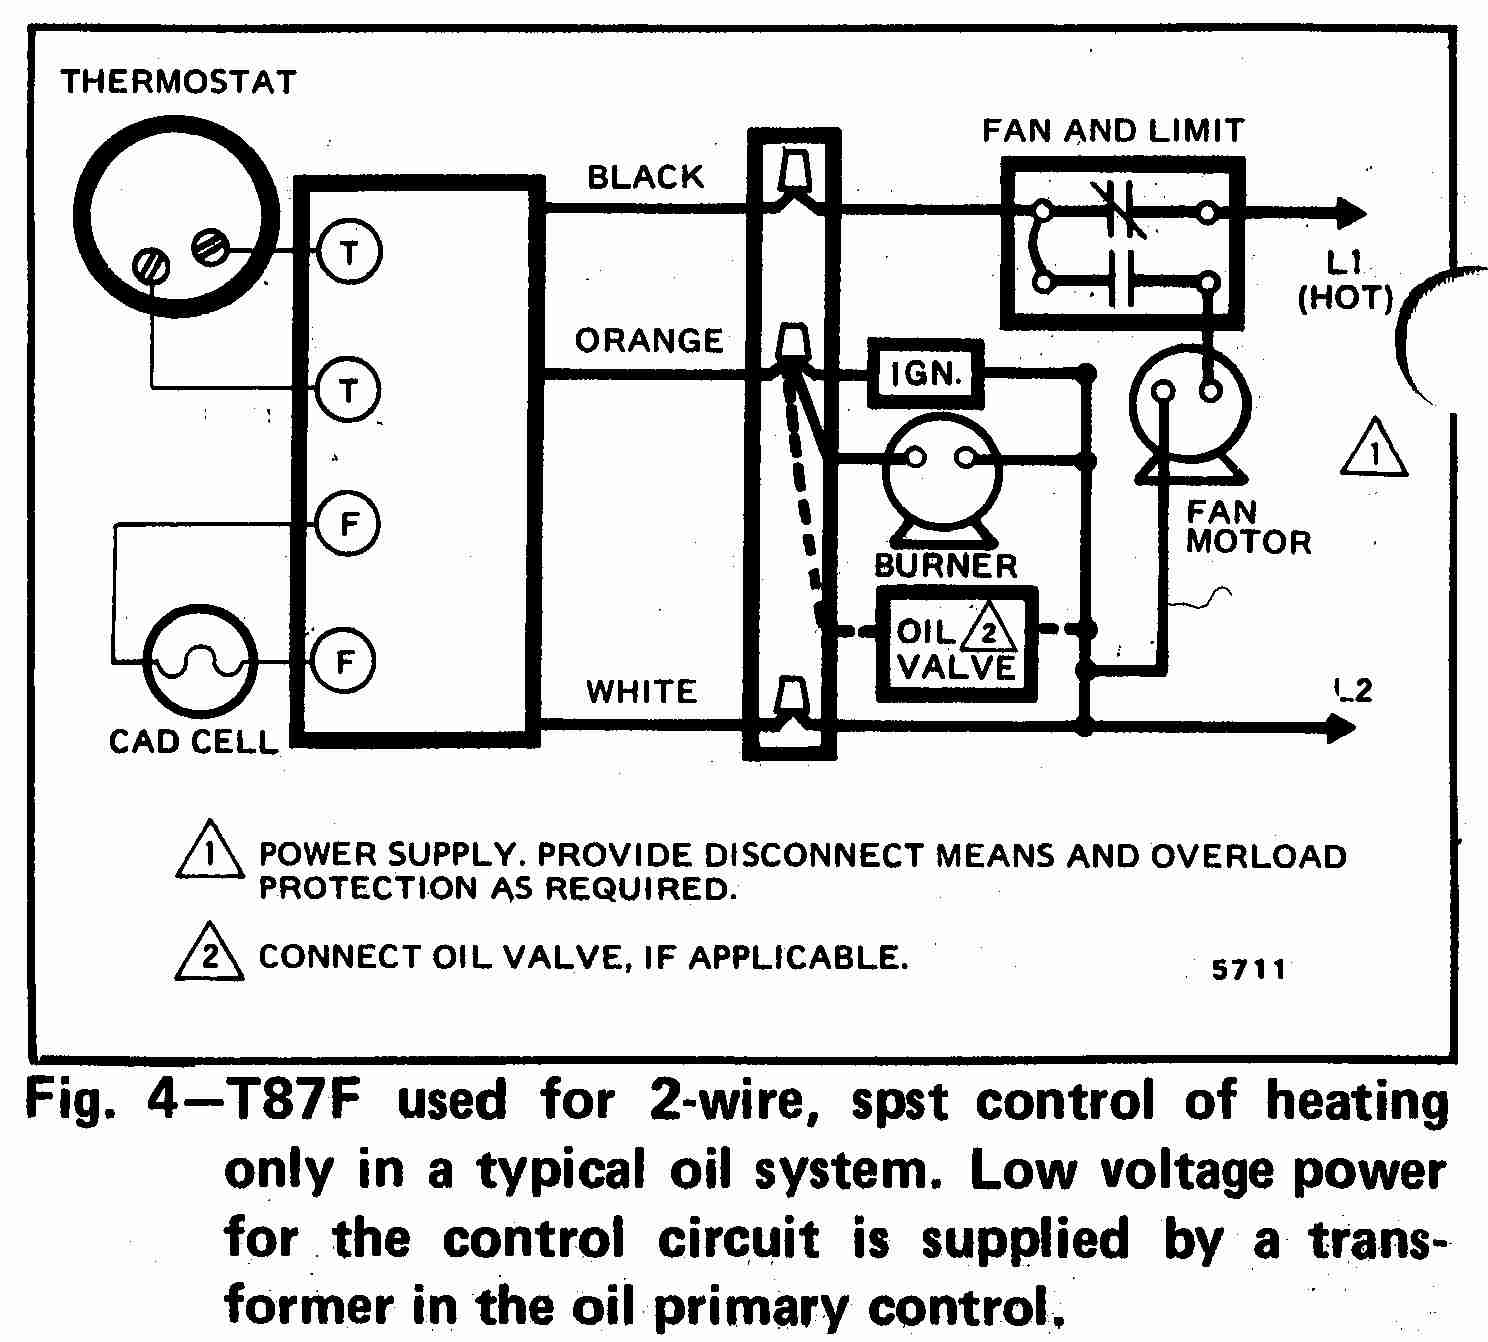 Honeywell Thermostat Schematic Trusted Wiring Diagrams Rth221b Basic Programmable Diagram Car Room For Hvac Systems Rh Inspectapedia Com Manual